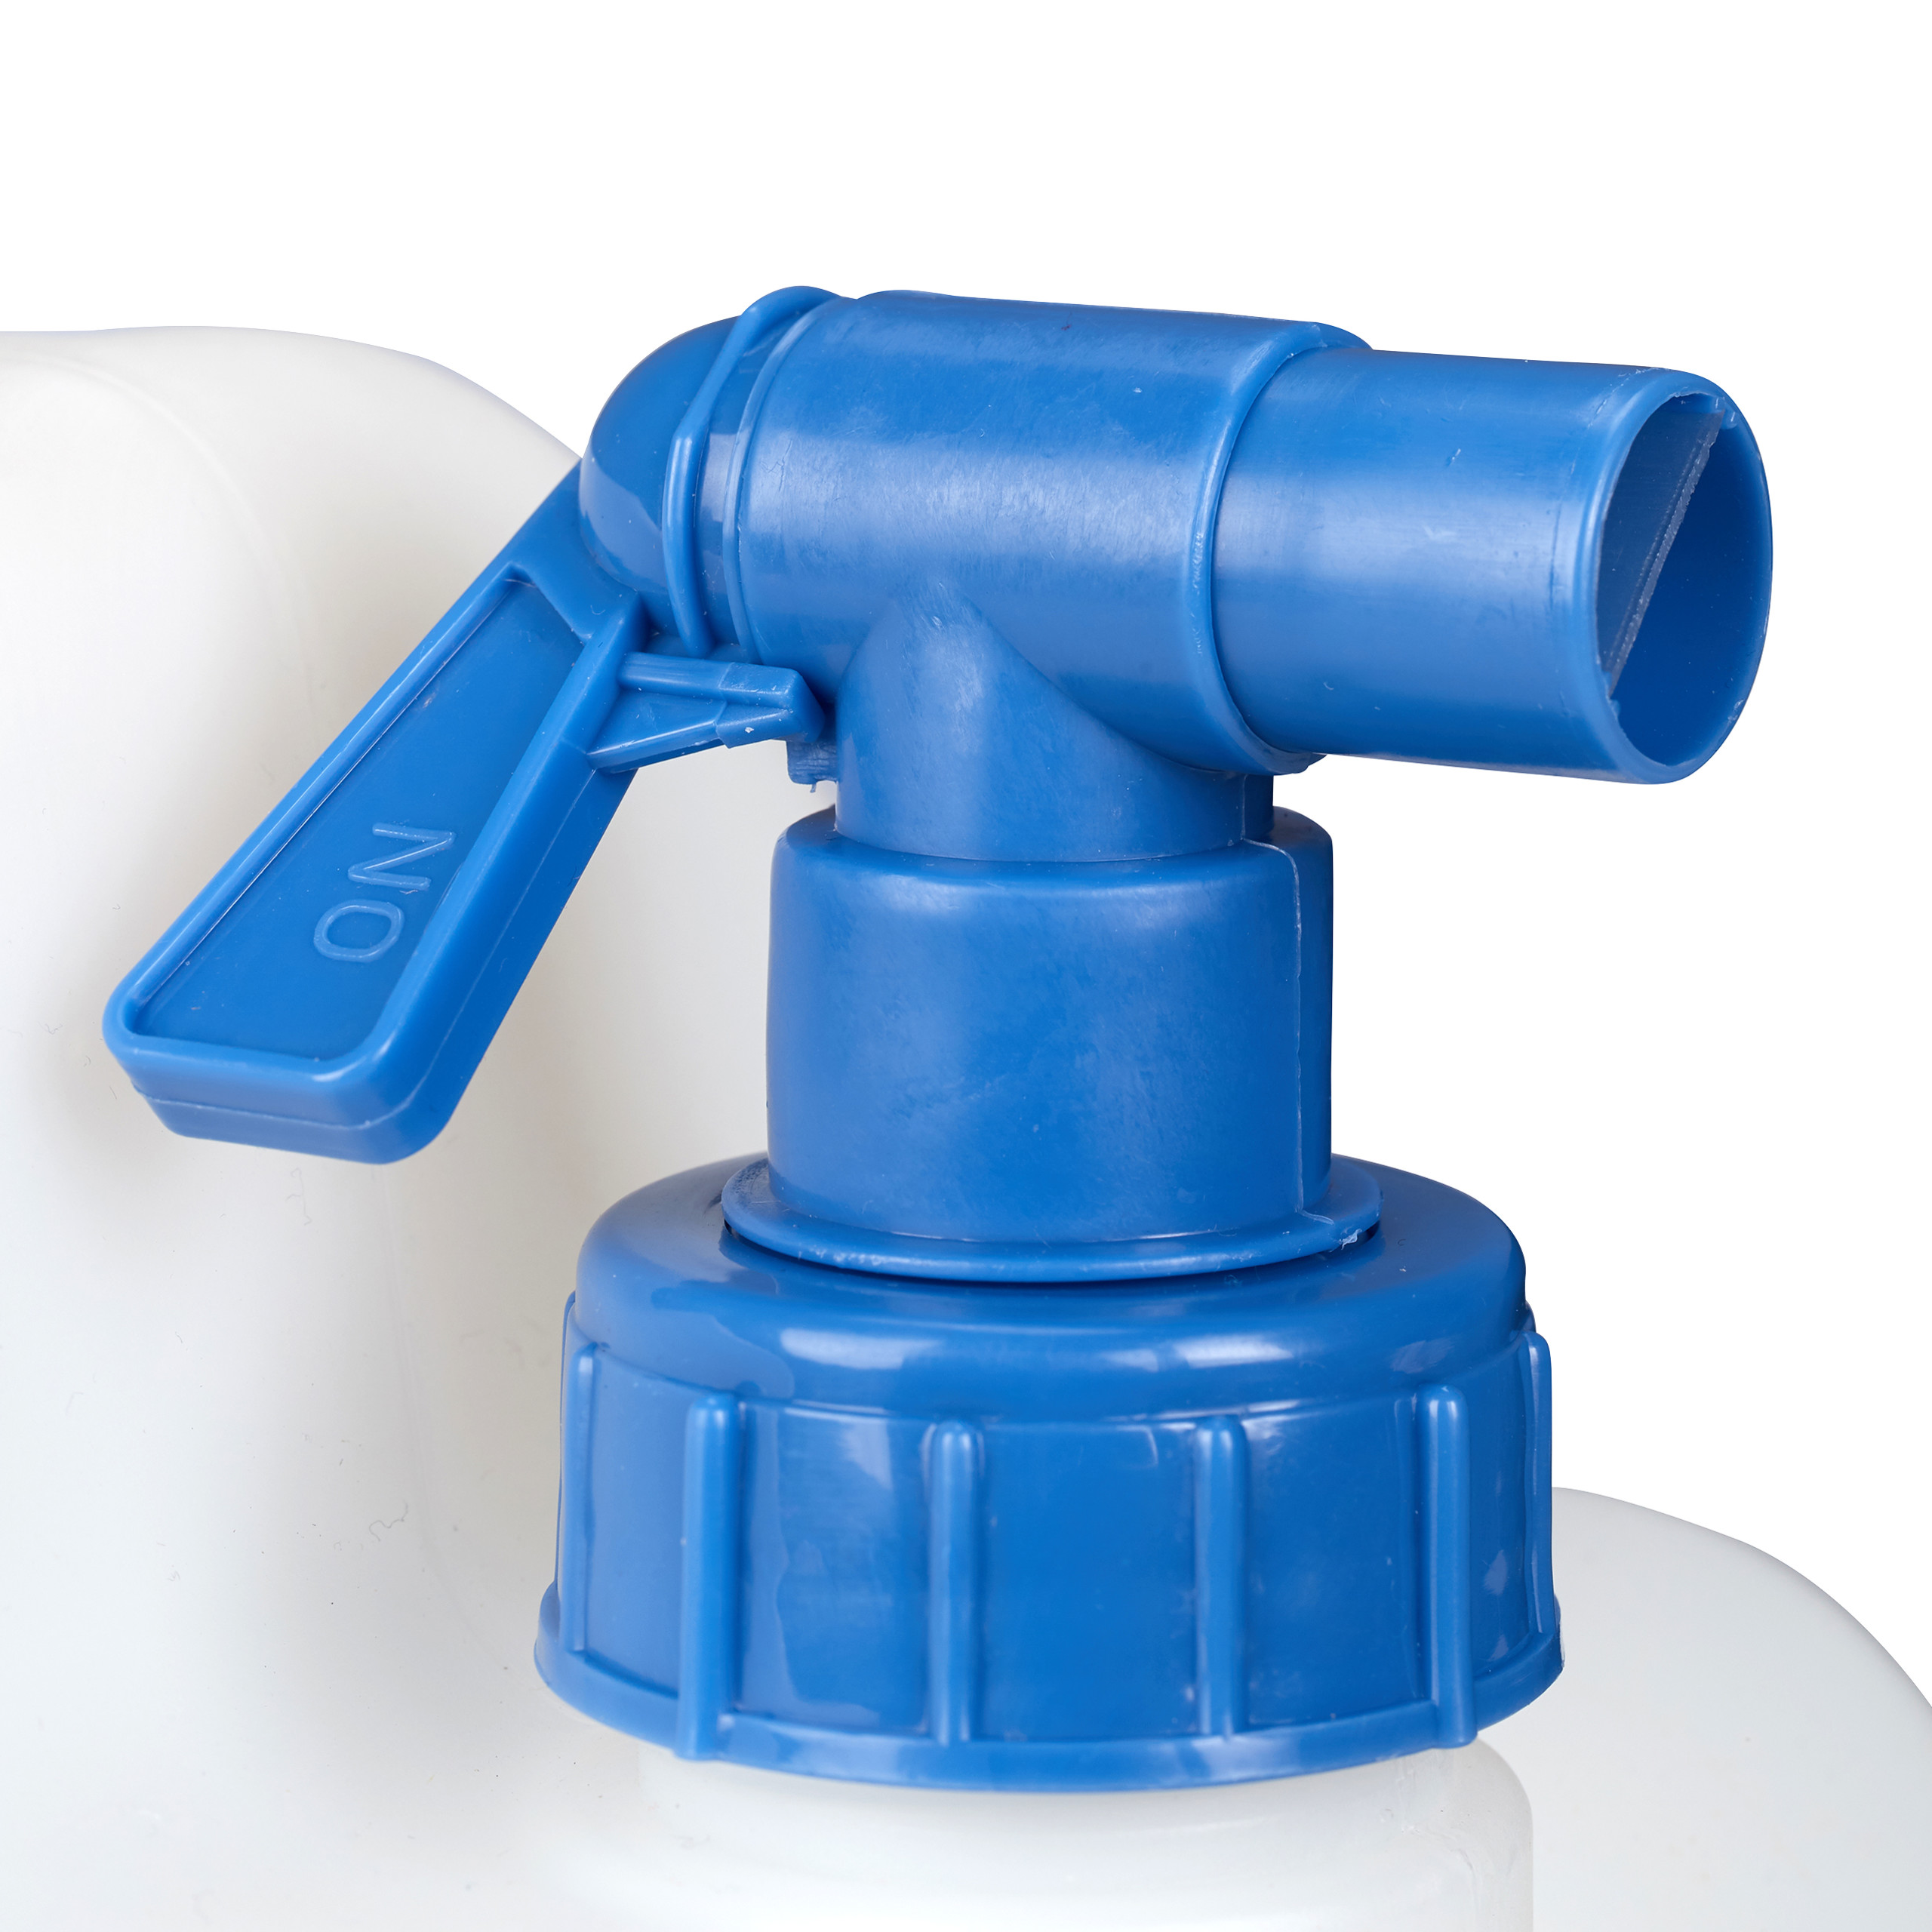 thumbnail 25 - Water Canister, Spigot, Jerrycan, Water Jug, Plastic Container